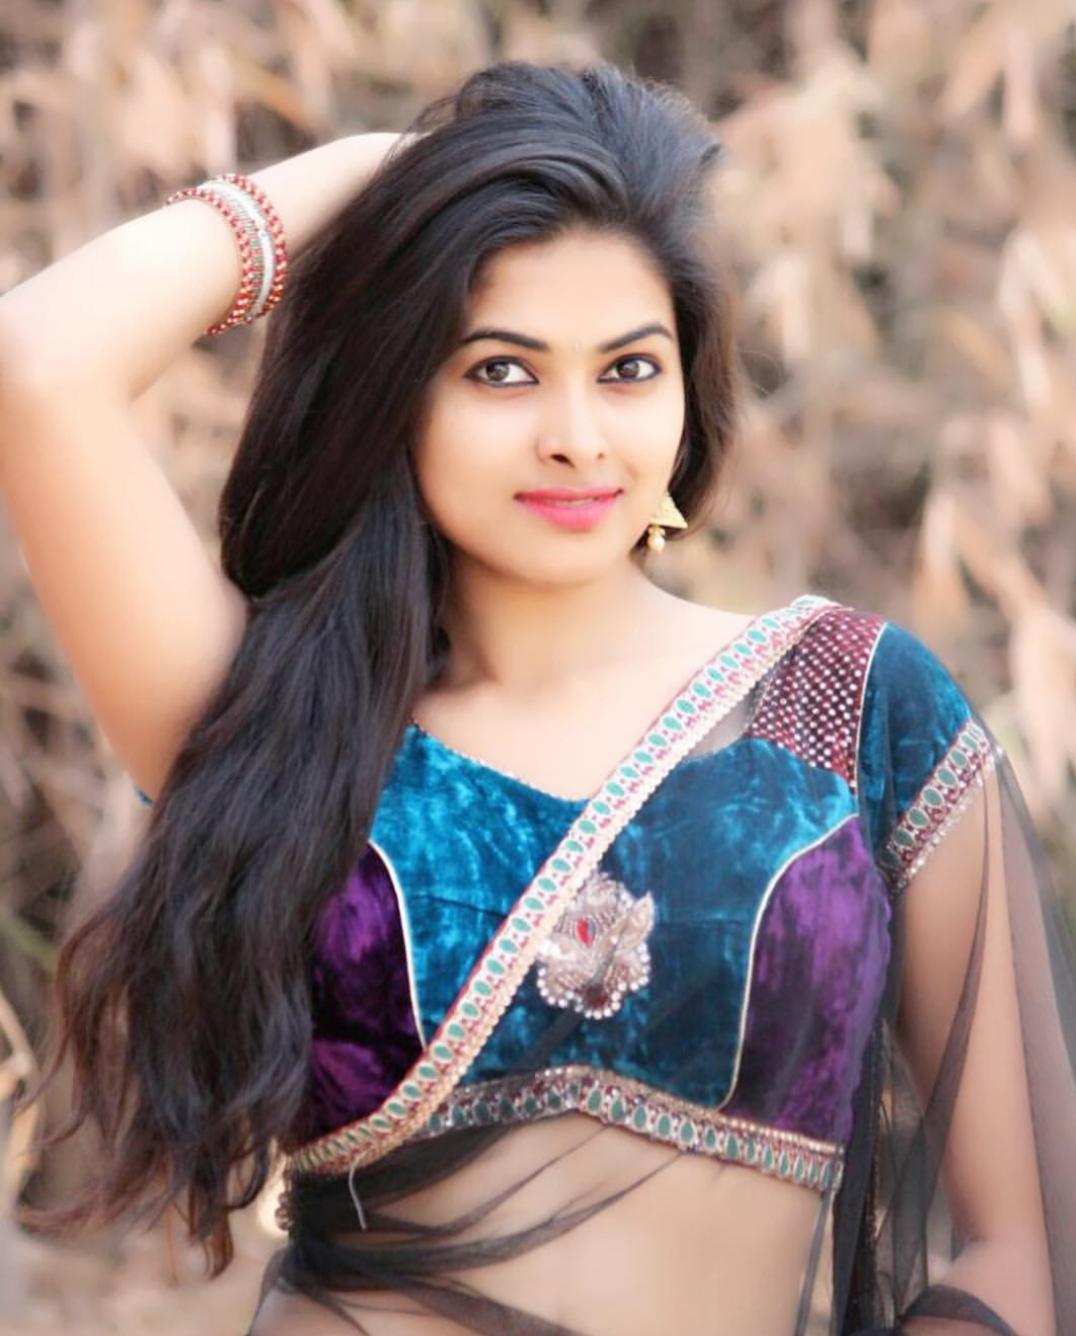 Escort Girls In Delhi – Serving Their Admirable Sexuality